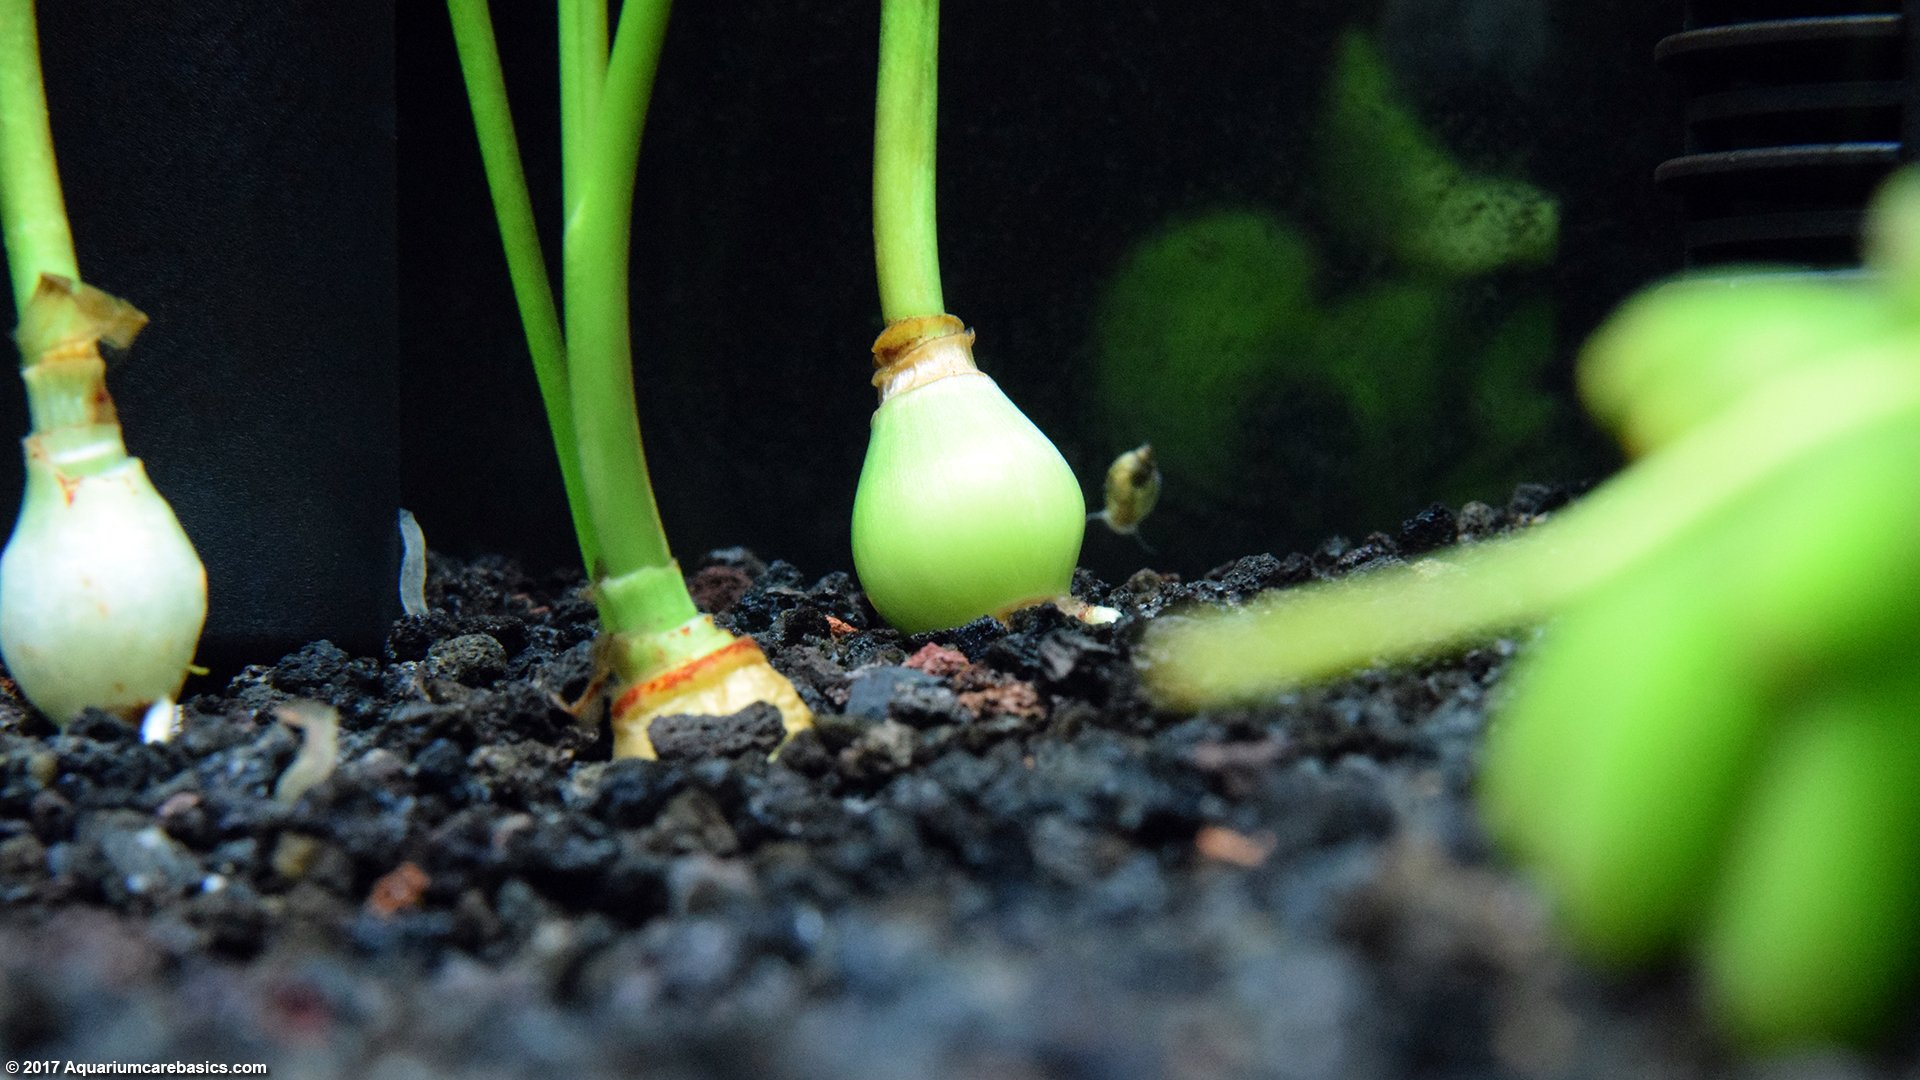 Dwarf onion plant care size bulb roots planting for In a garden 26 trees are planted